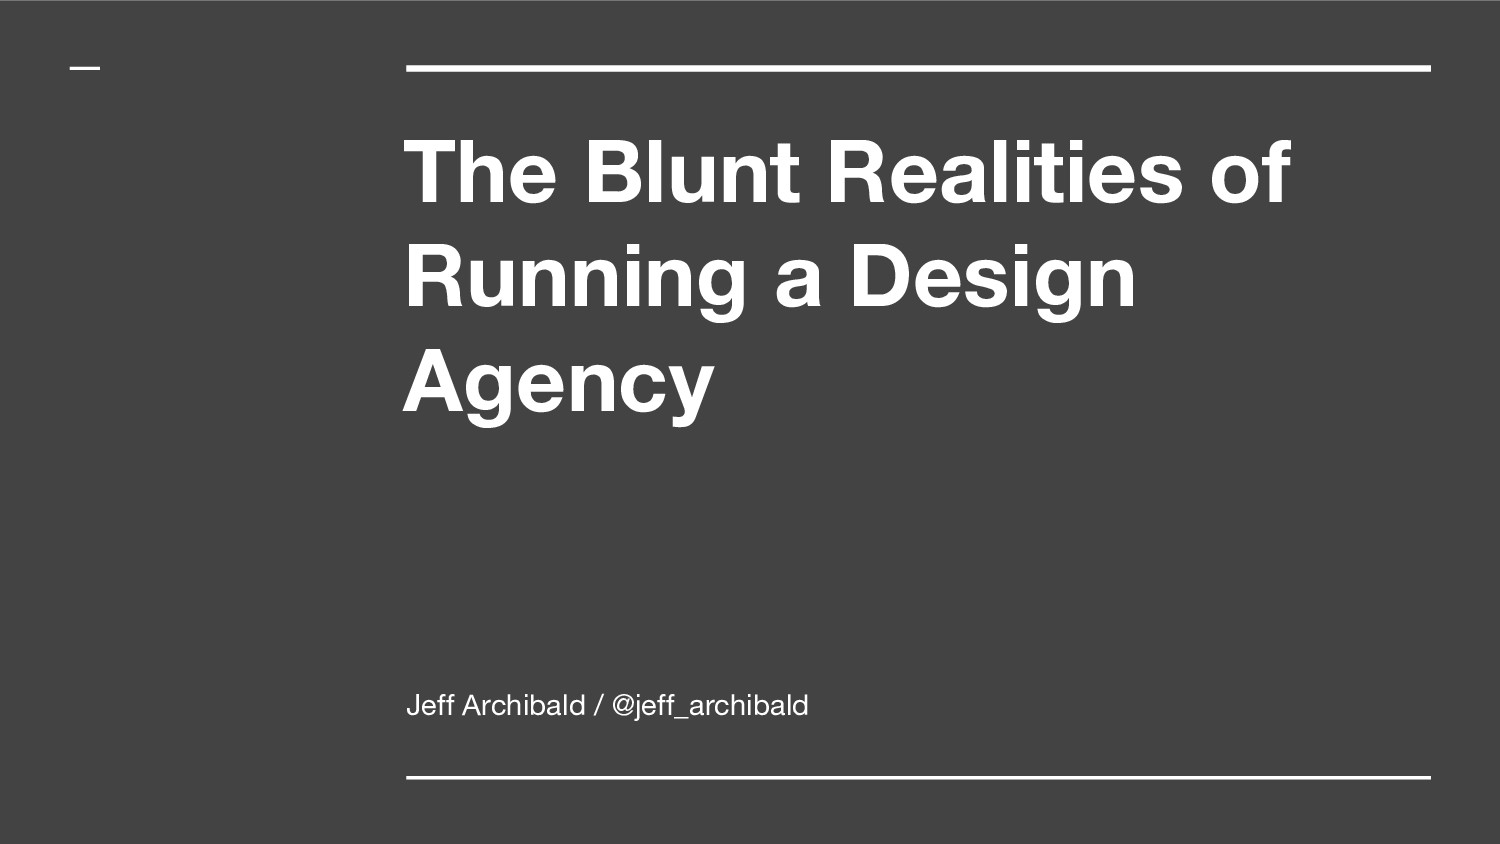 The Blunt Realities of Running a Design Agency ...